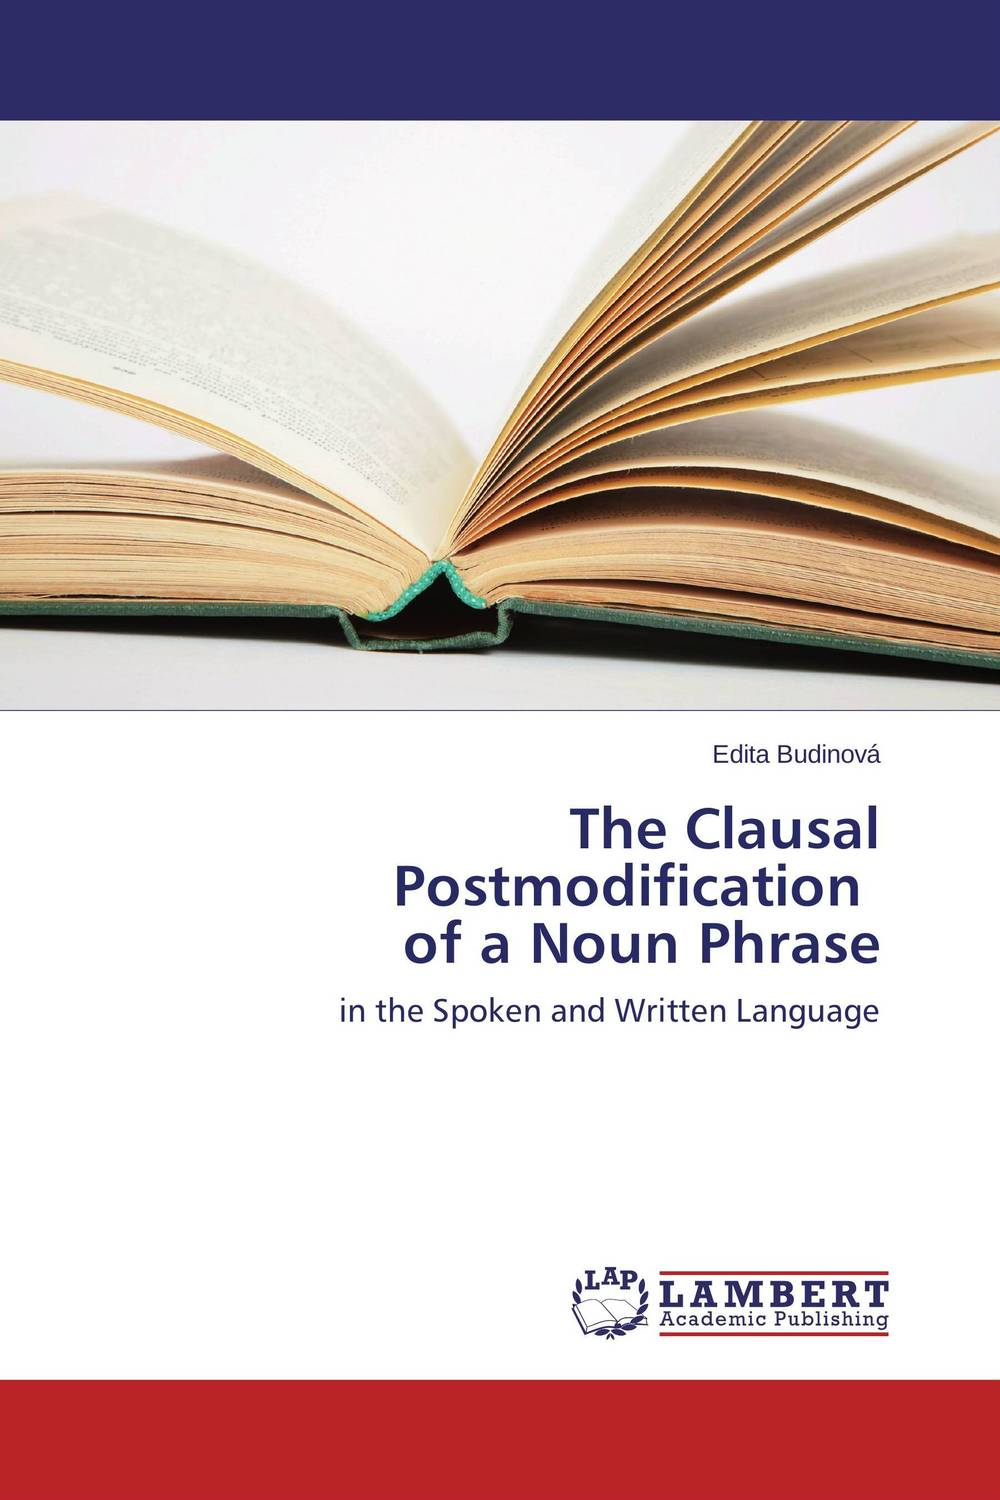 The Clausal Postmodification   of a Noun Phrase russian phrase book